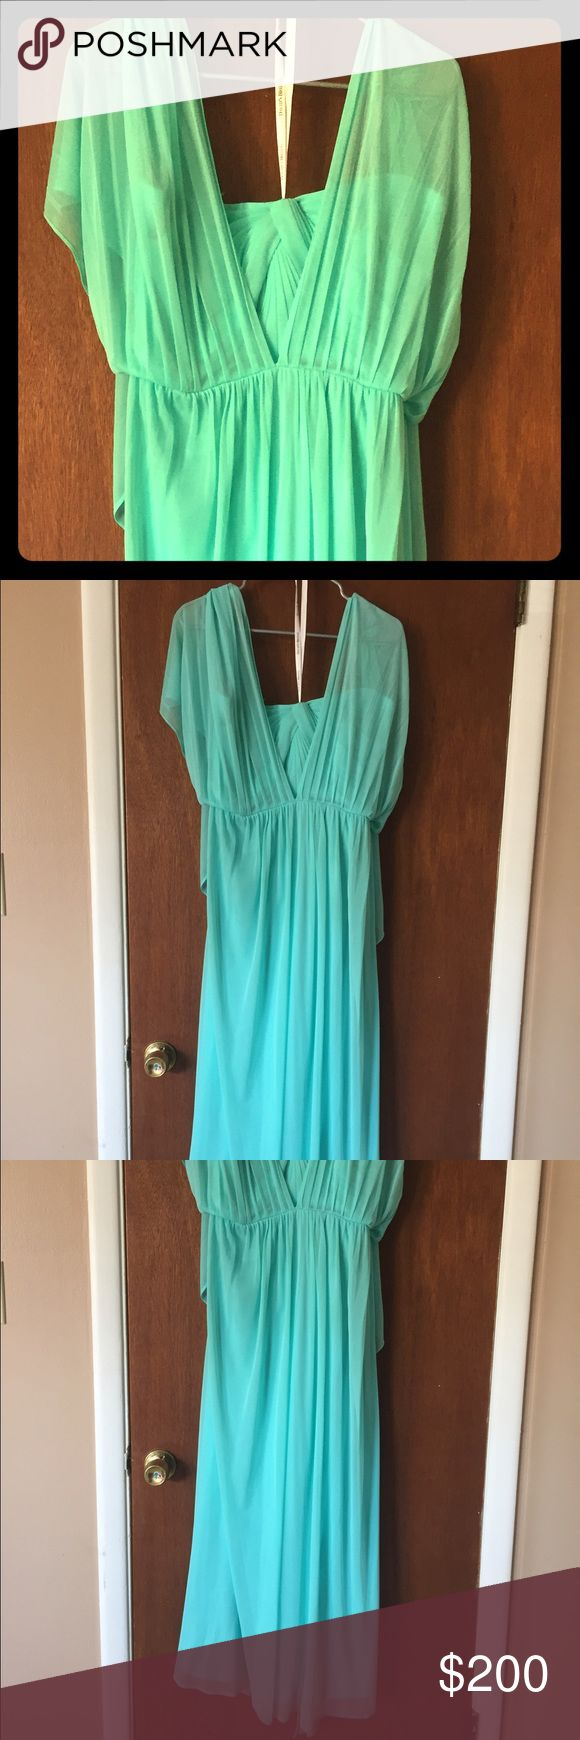 Teal Bridesmaid Dress. Worn once. Custom made so wearing a bra with straps is ok. Back has flowy sleeves down to waist. Size 18. Very comfortable and breezy. In the final photo you can see the glorious back in the reflection of the window David's Bridal Dresses Prom